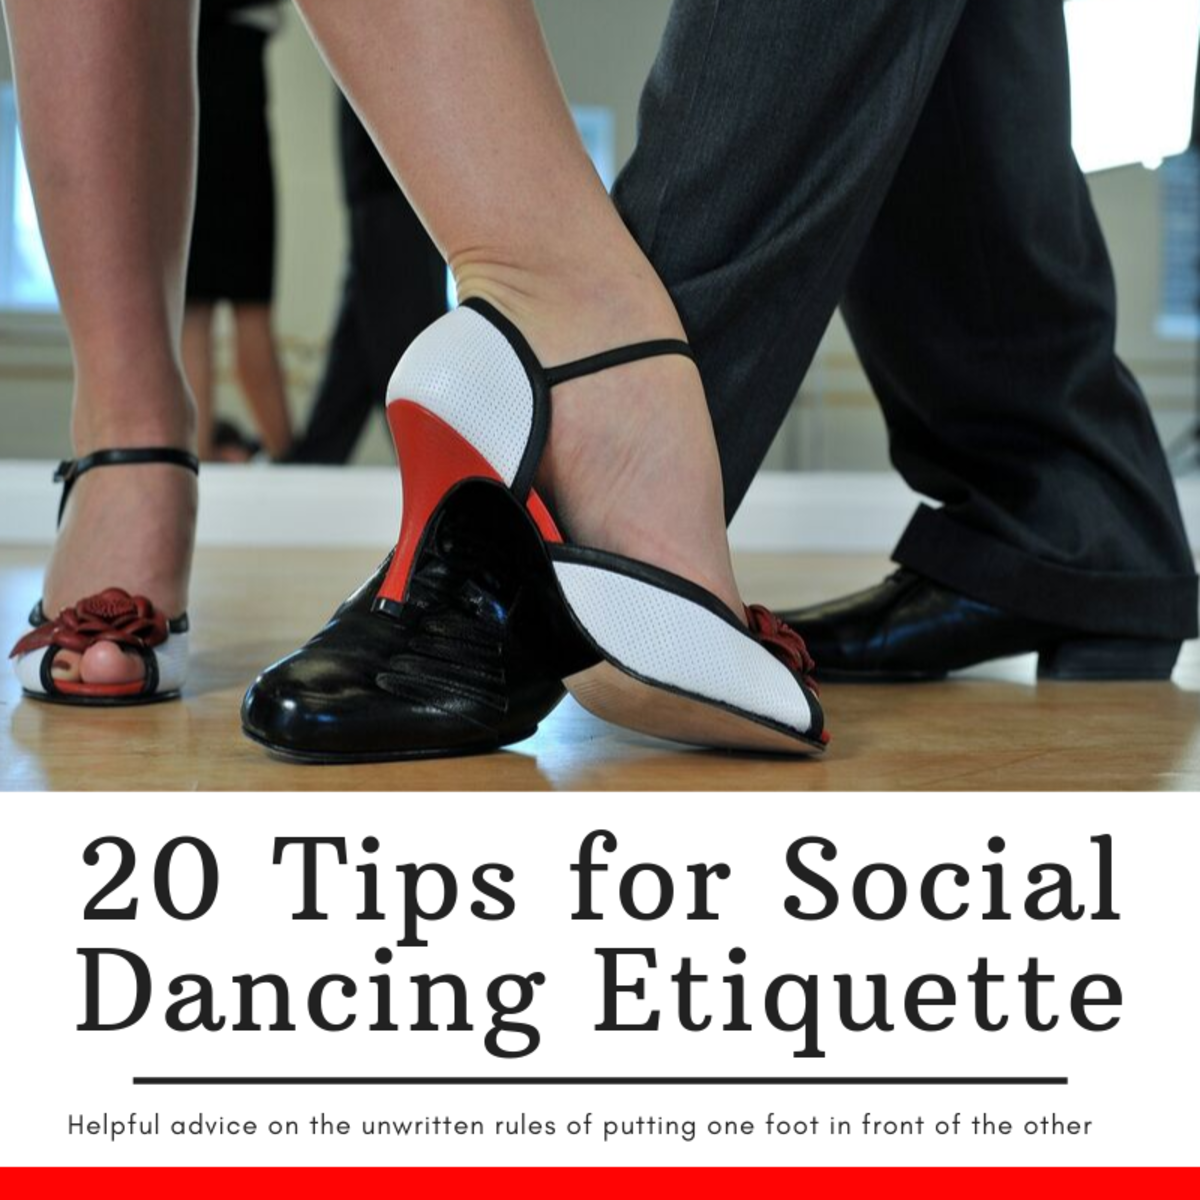 Check out these 20 helpful tips on social dancing etiquette.